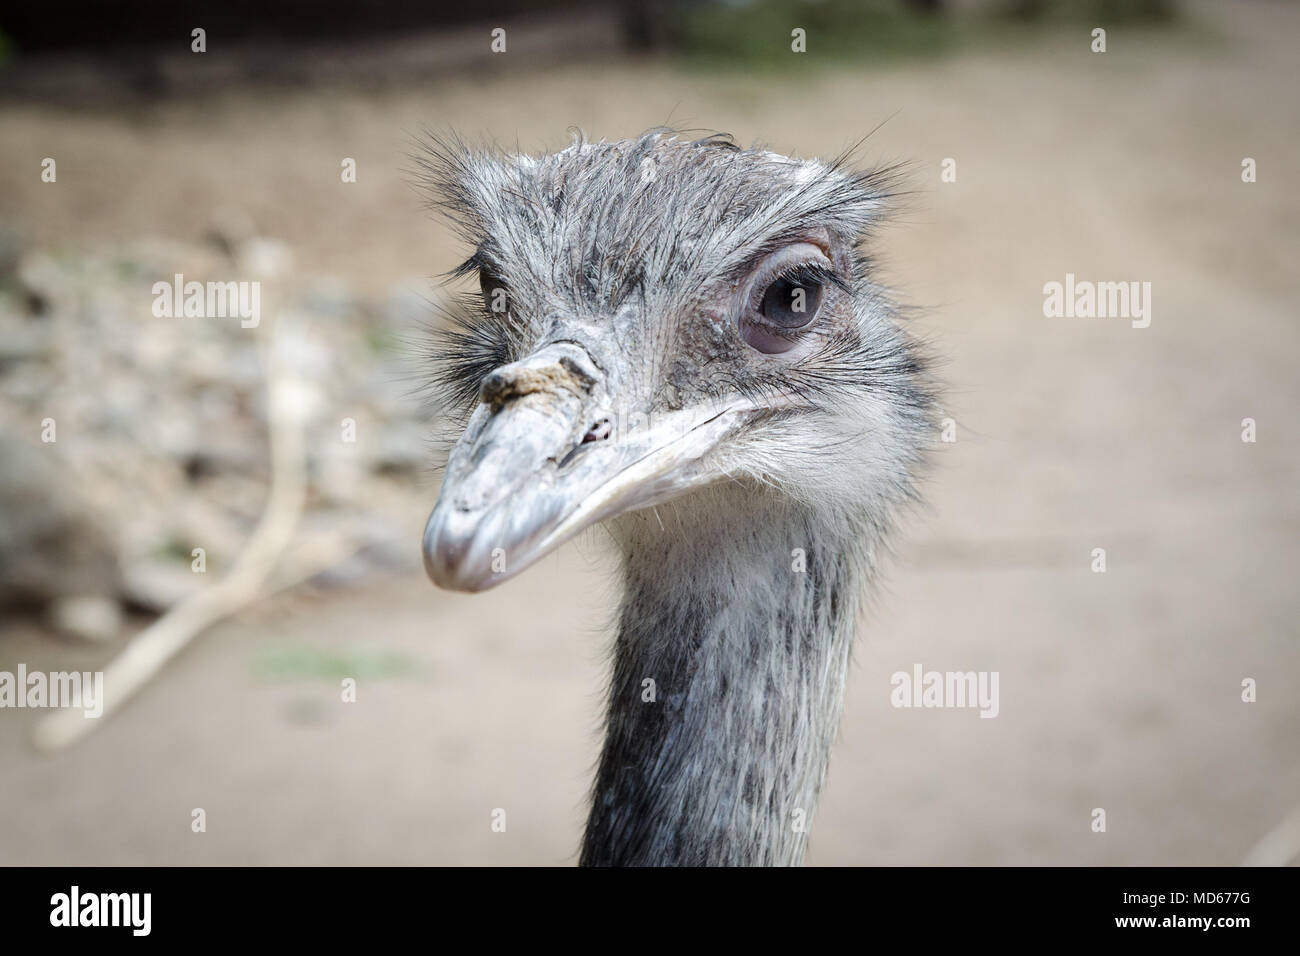 Ostrich looking in camera - Stock Image